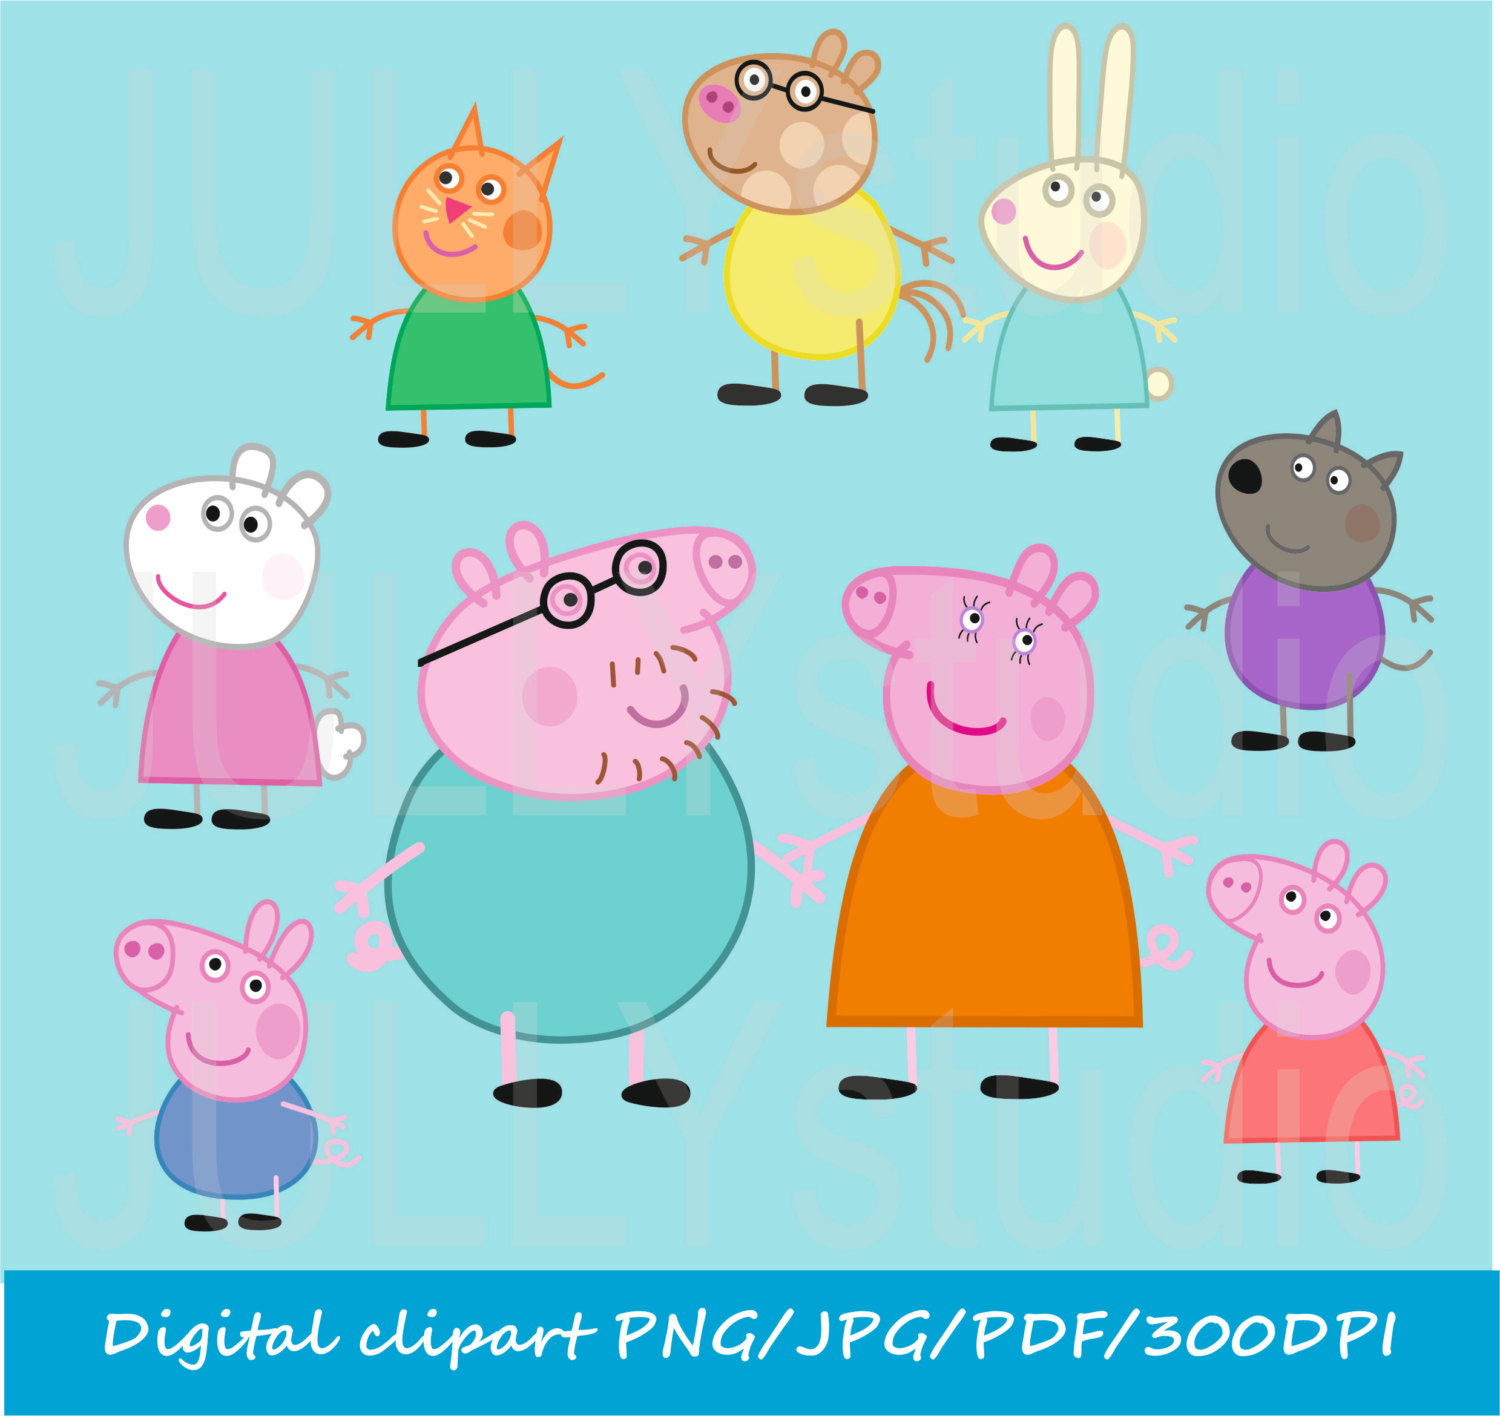 Free Download Eps Files Vecto - Peppa Pig Clip Art